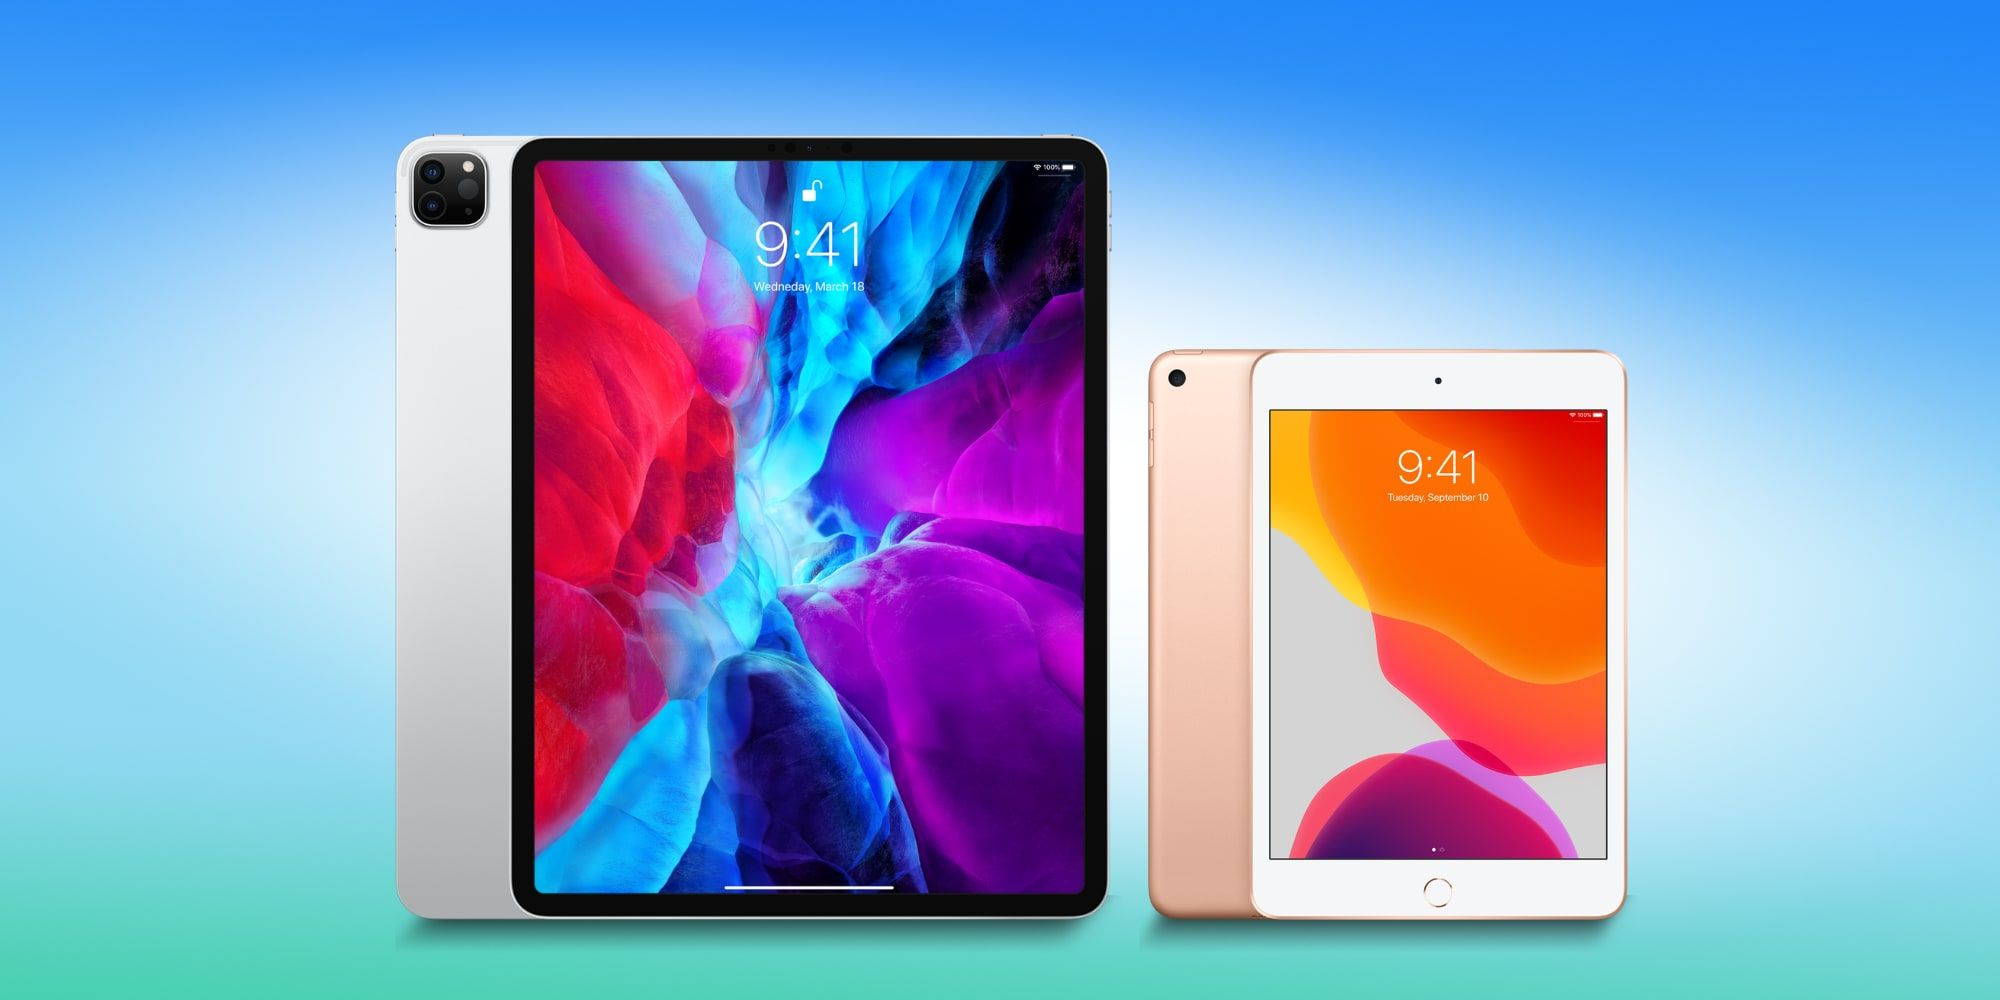 iPad, Air, mini & Pro: How To Figure Out Which iPad Is Right For You